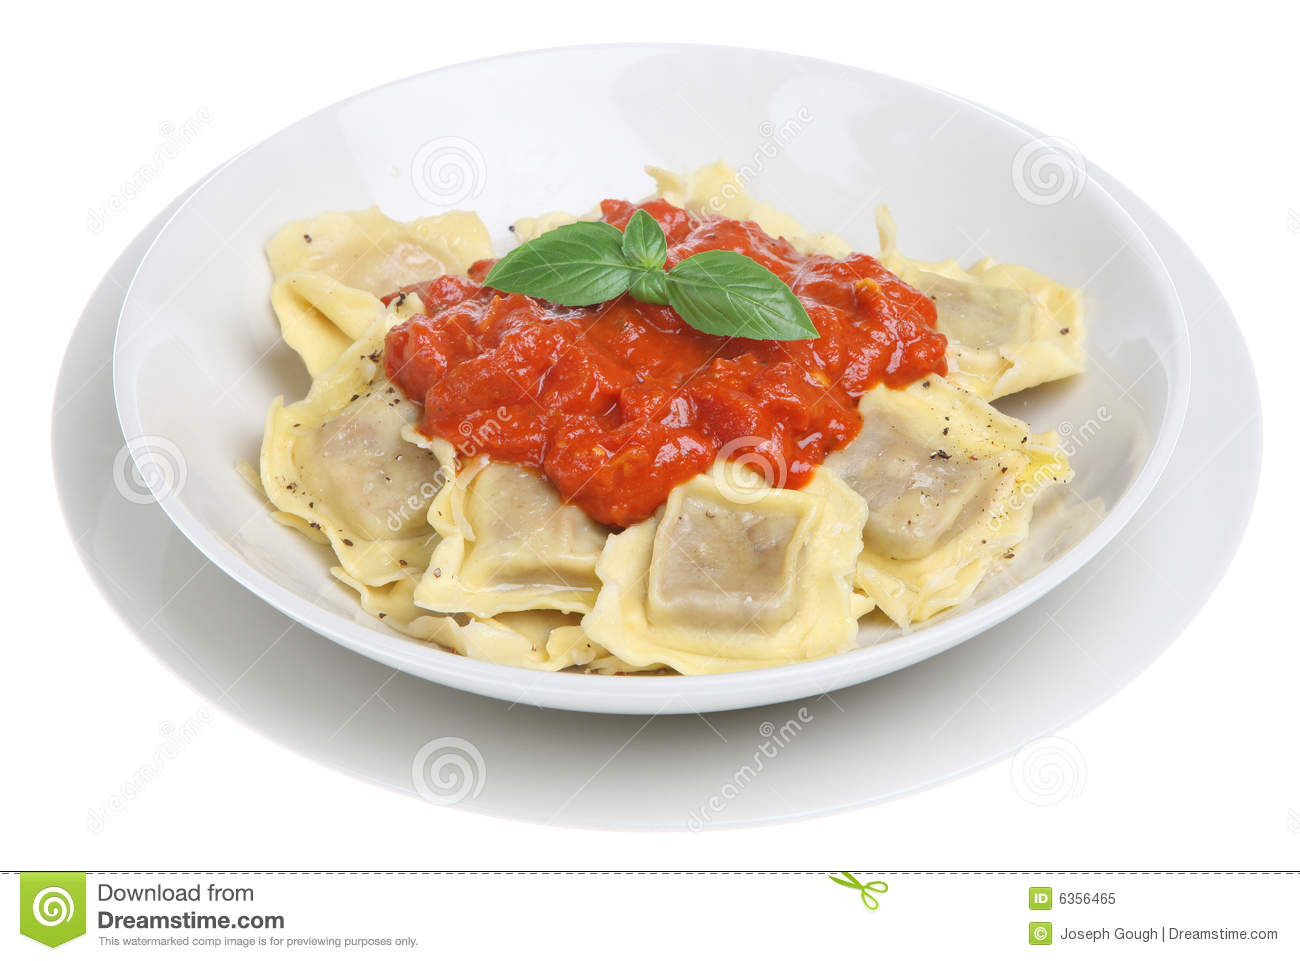 how to cook ravioli with tomato sauce